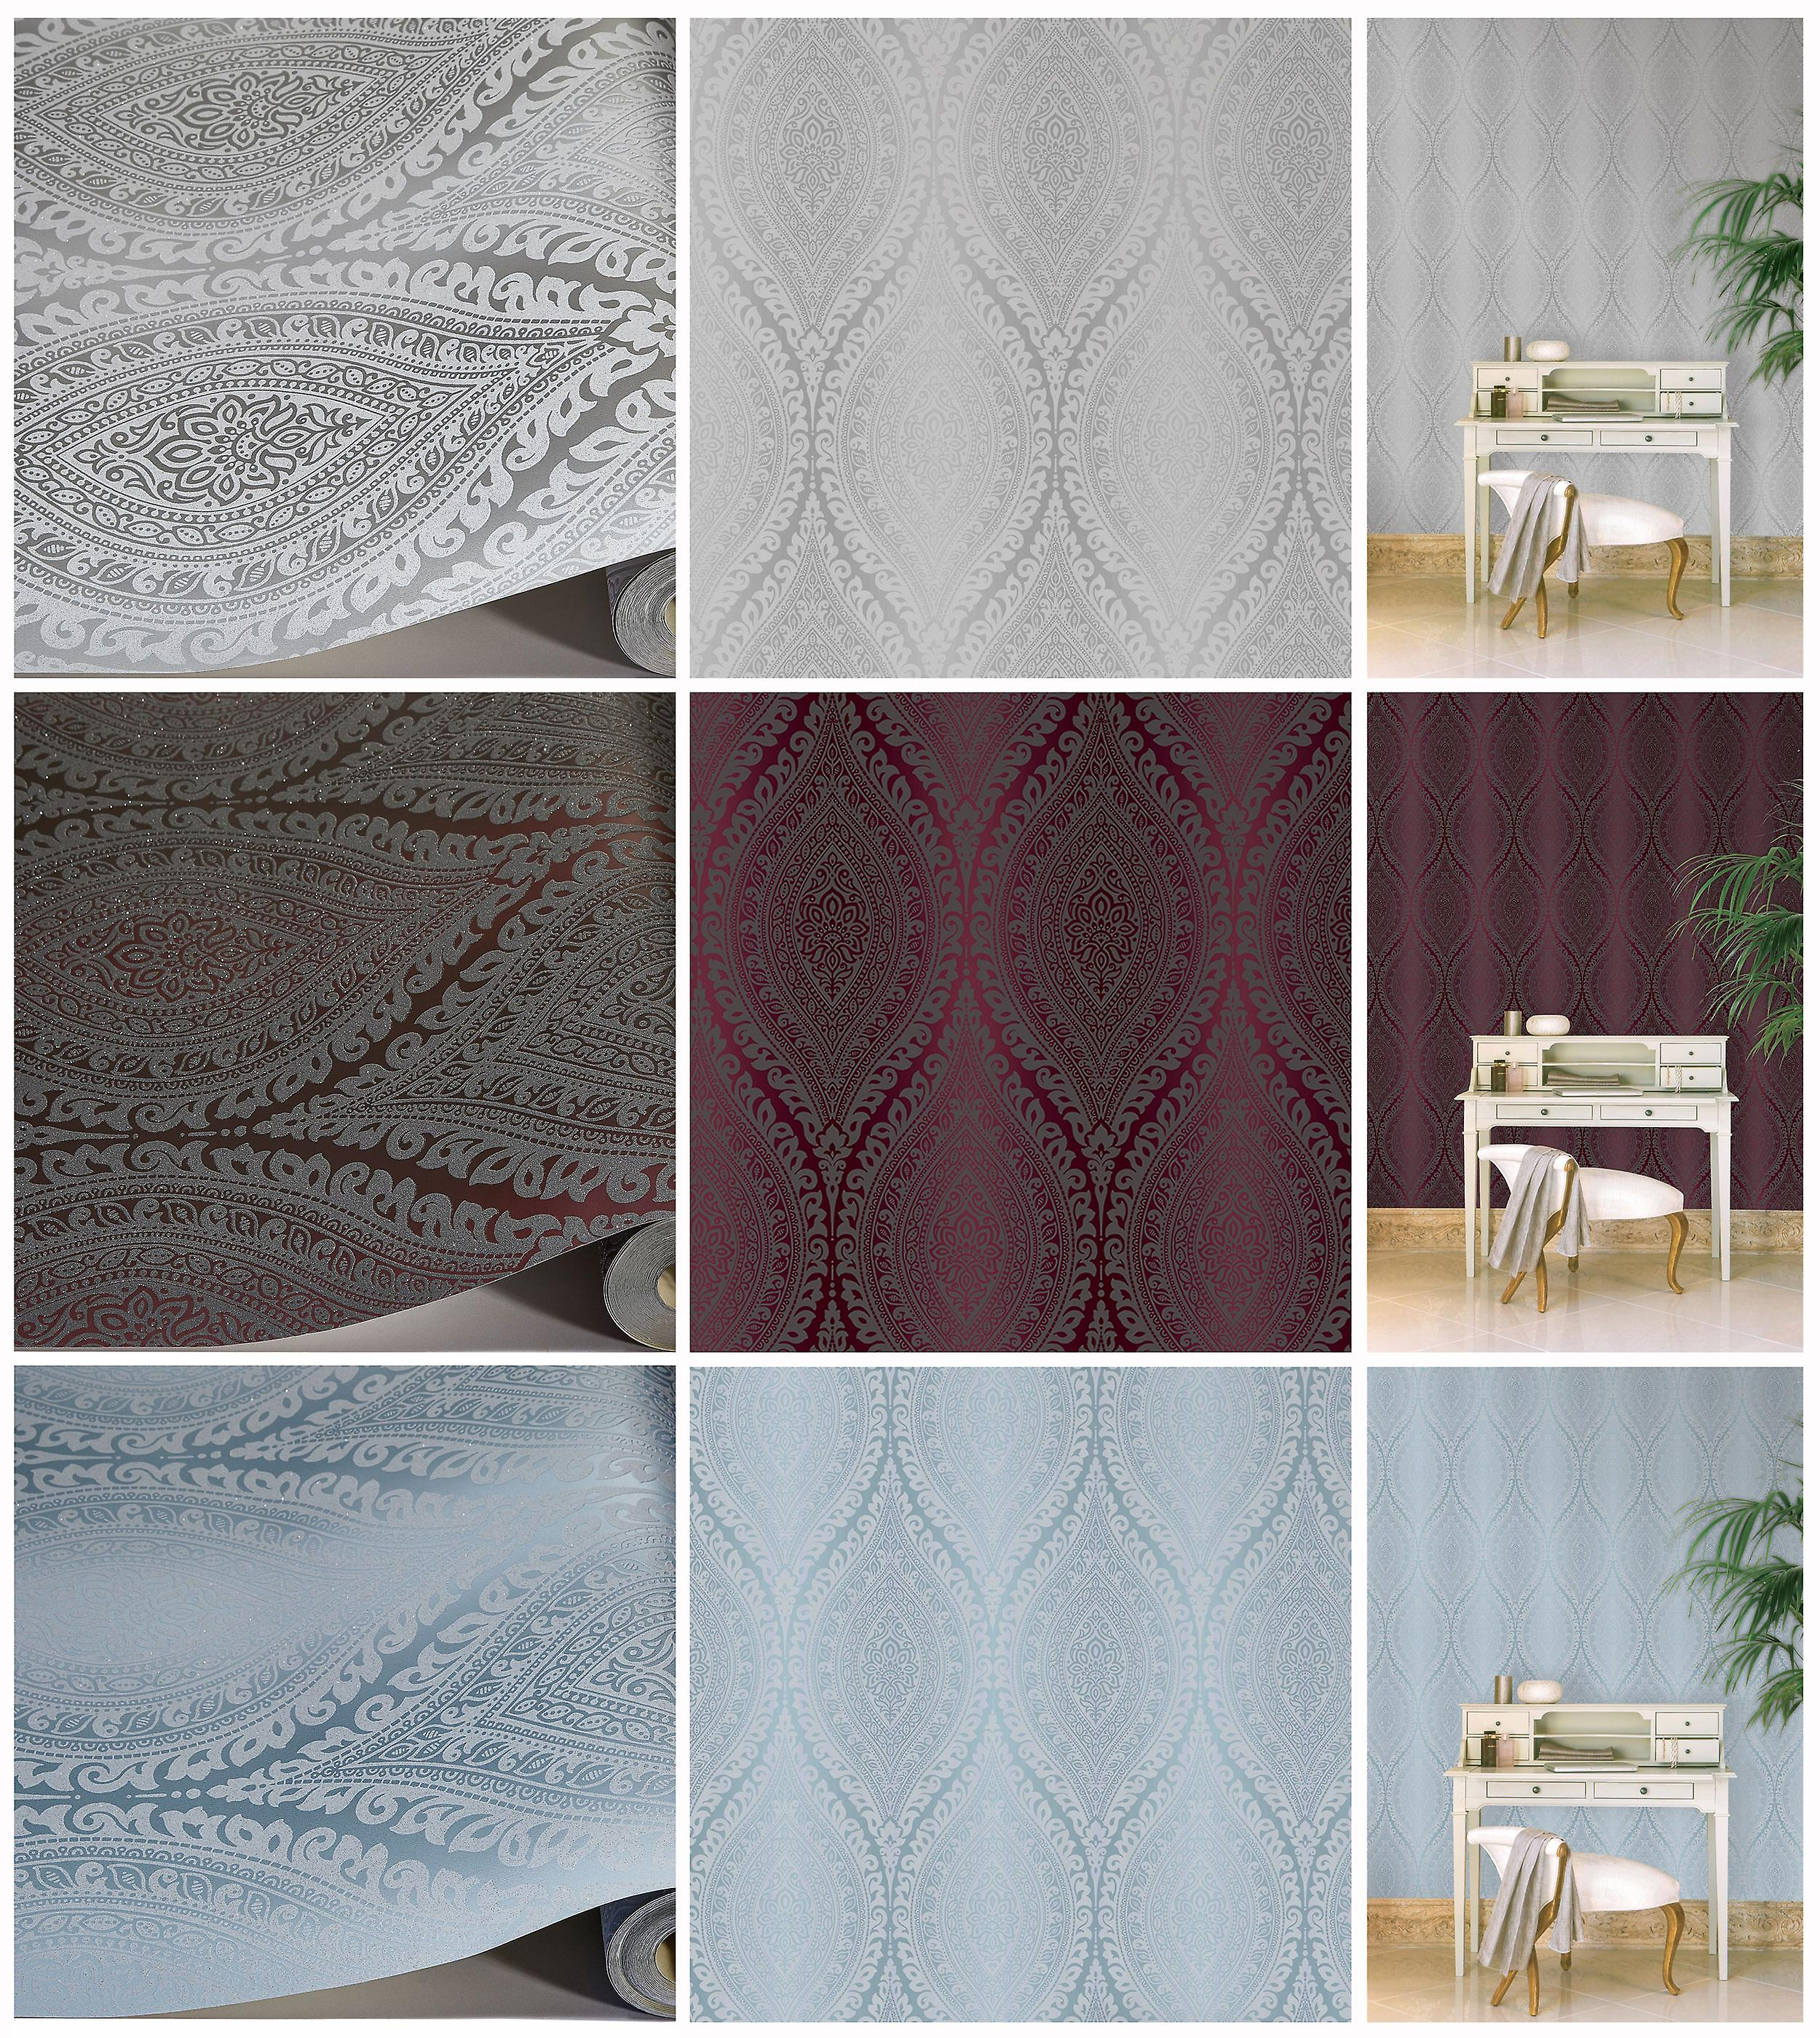 Damask Wallpaper Metallic Glitter Sparkle Textured Embossed Luxury Vinyl